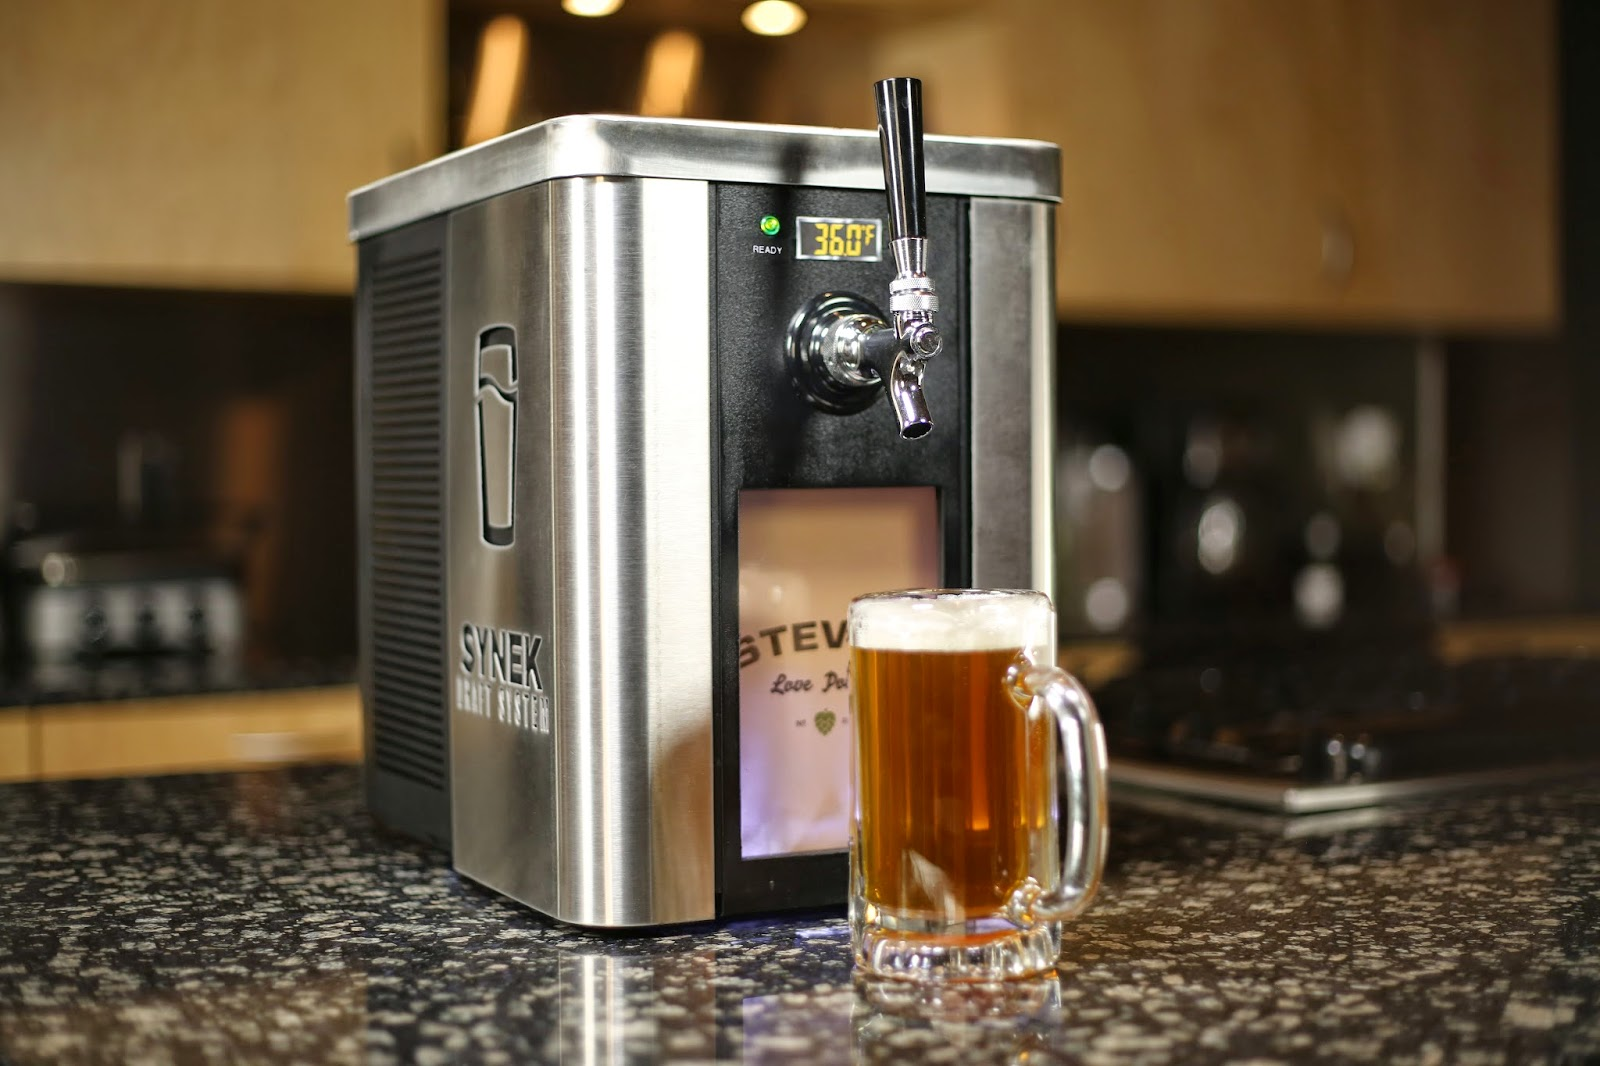 Beer tap systems for home - Image Courtesy Of Synek